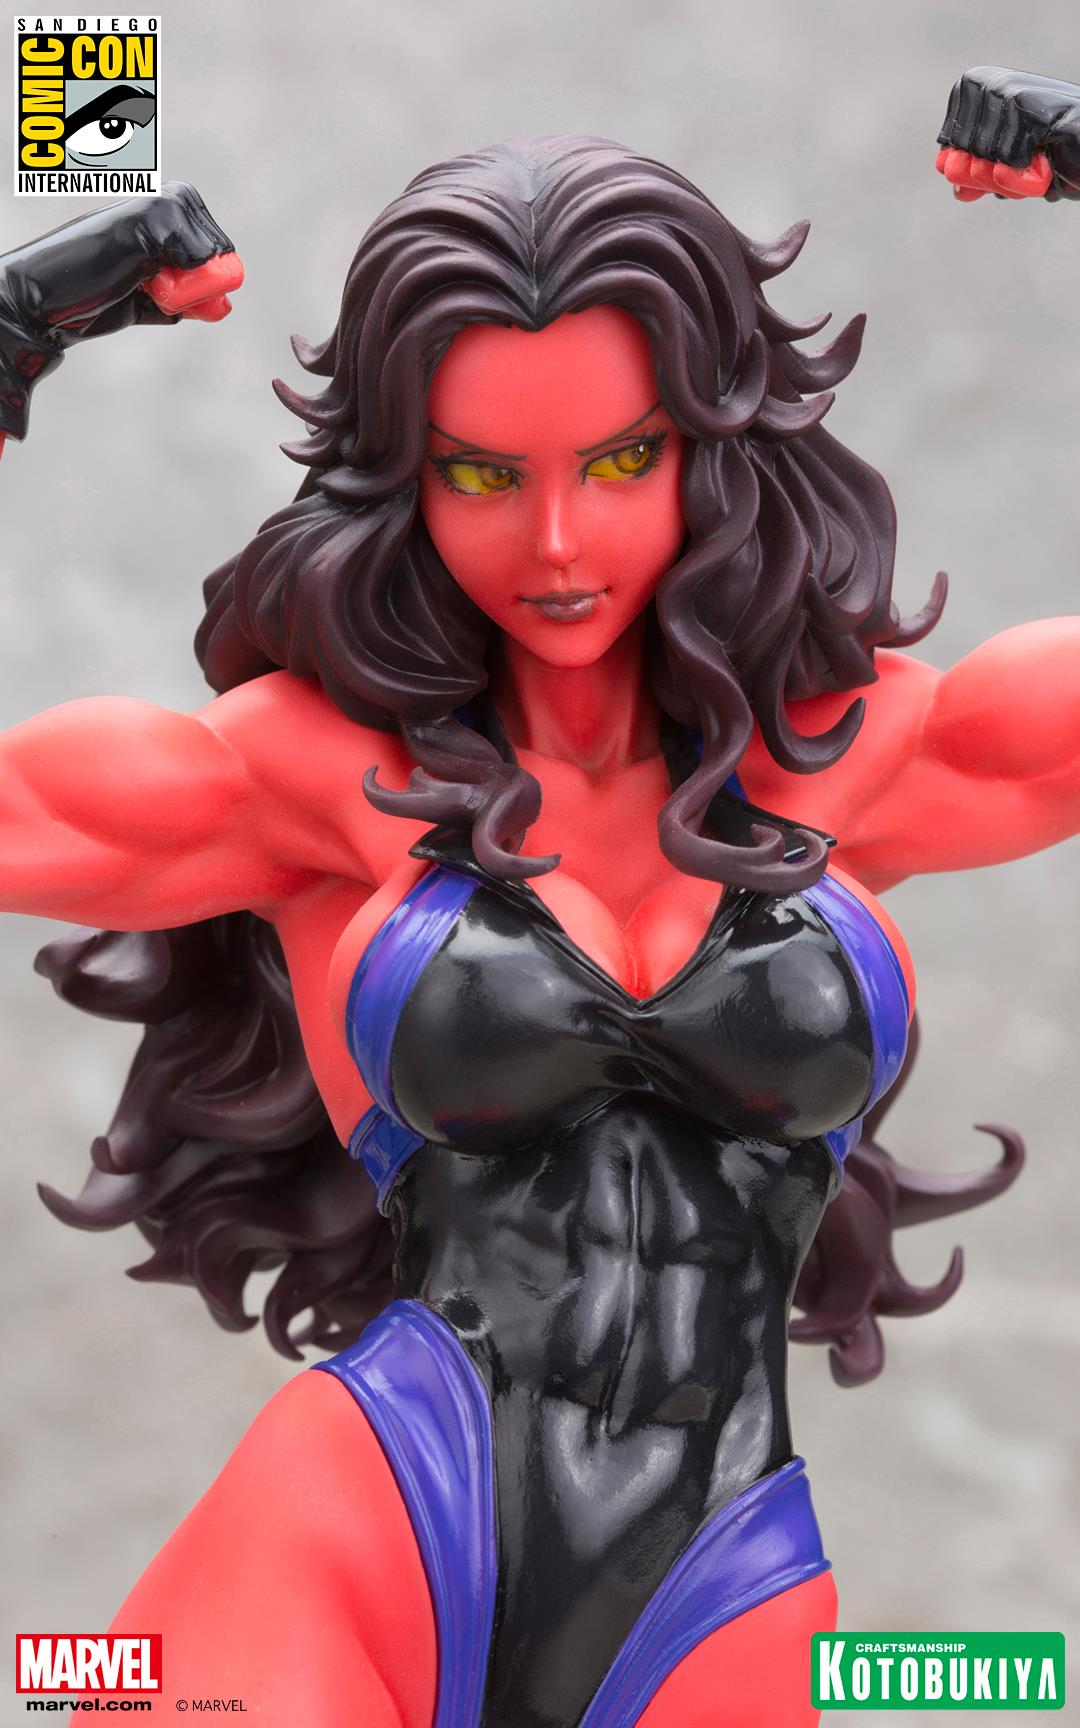 red-she-hulk-bishoujo-statue-2015-sdcc-exclusive-marvel-kotobukiya-10